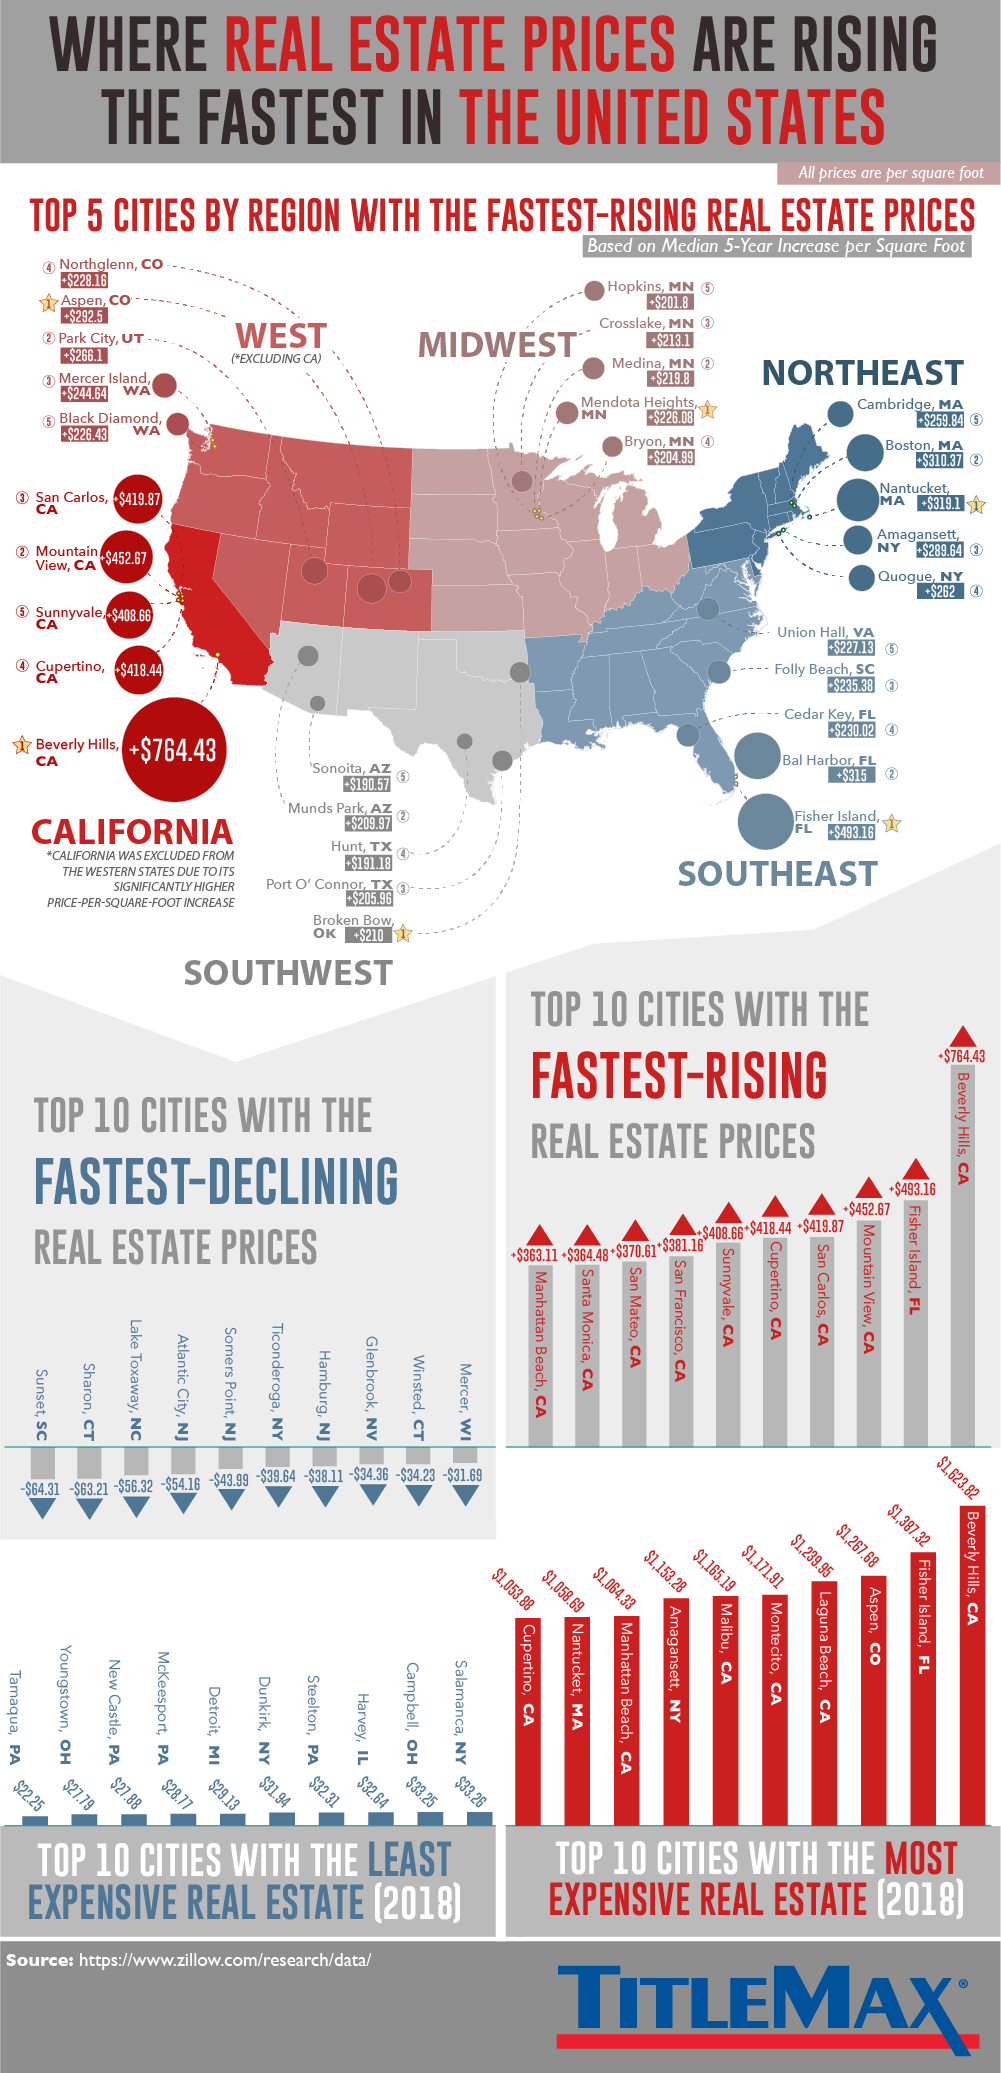 This Map Shows Where Real Estate Prices are Rising the Fastest